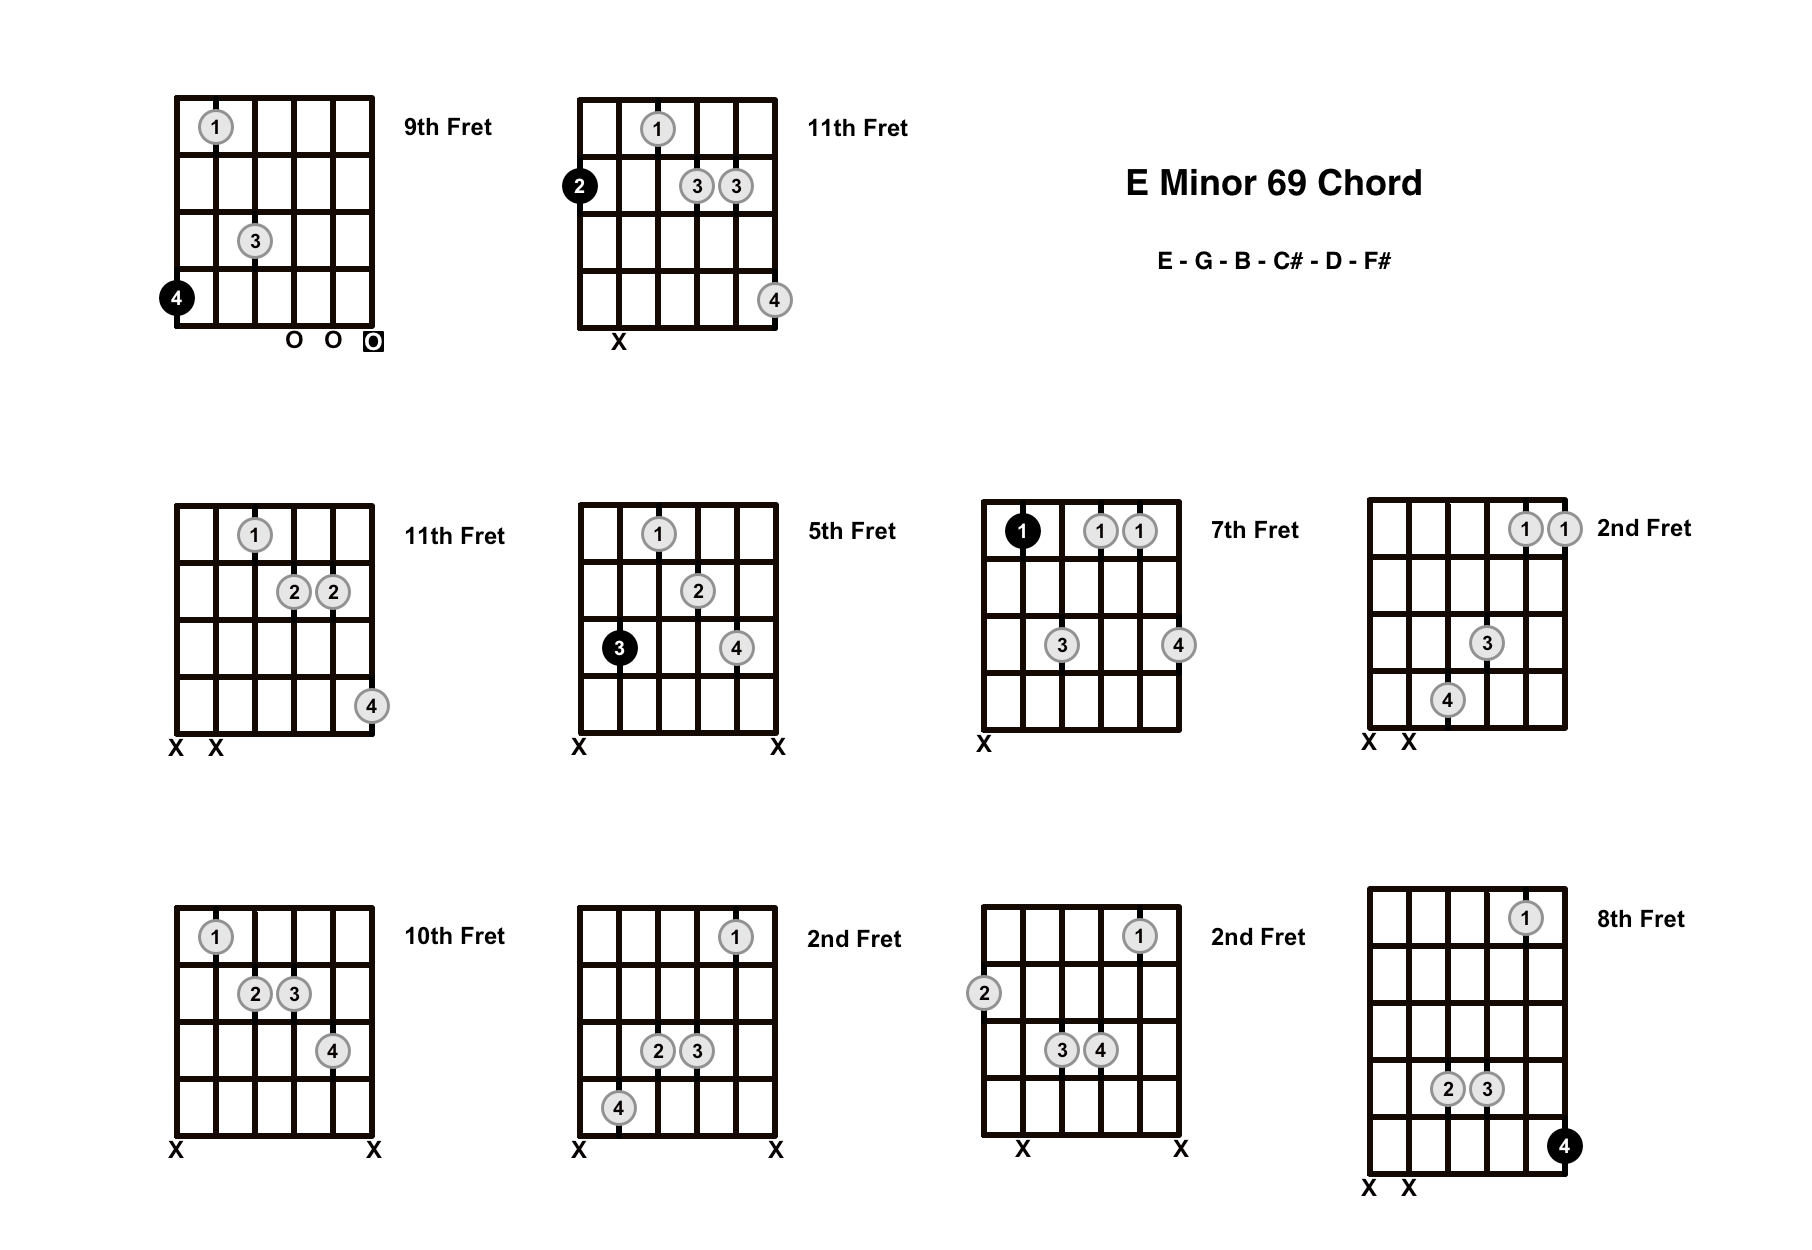 Em69 Chord On The Guitar (E Minor 69) – Diagrams, Finger Positions and Theory